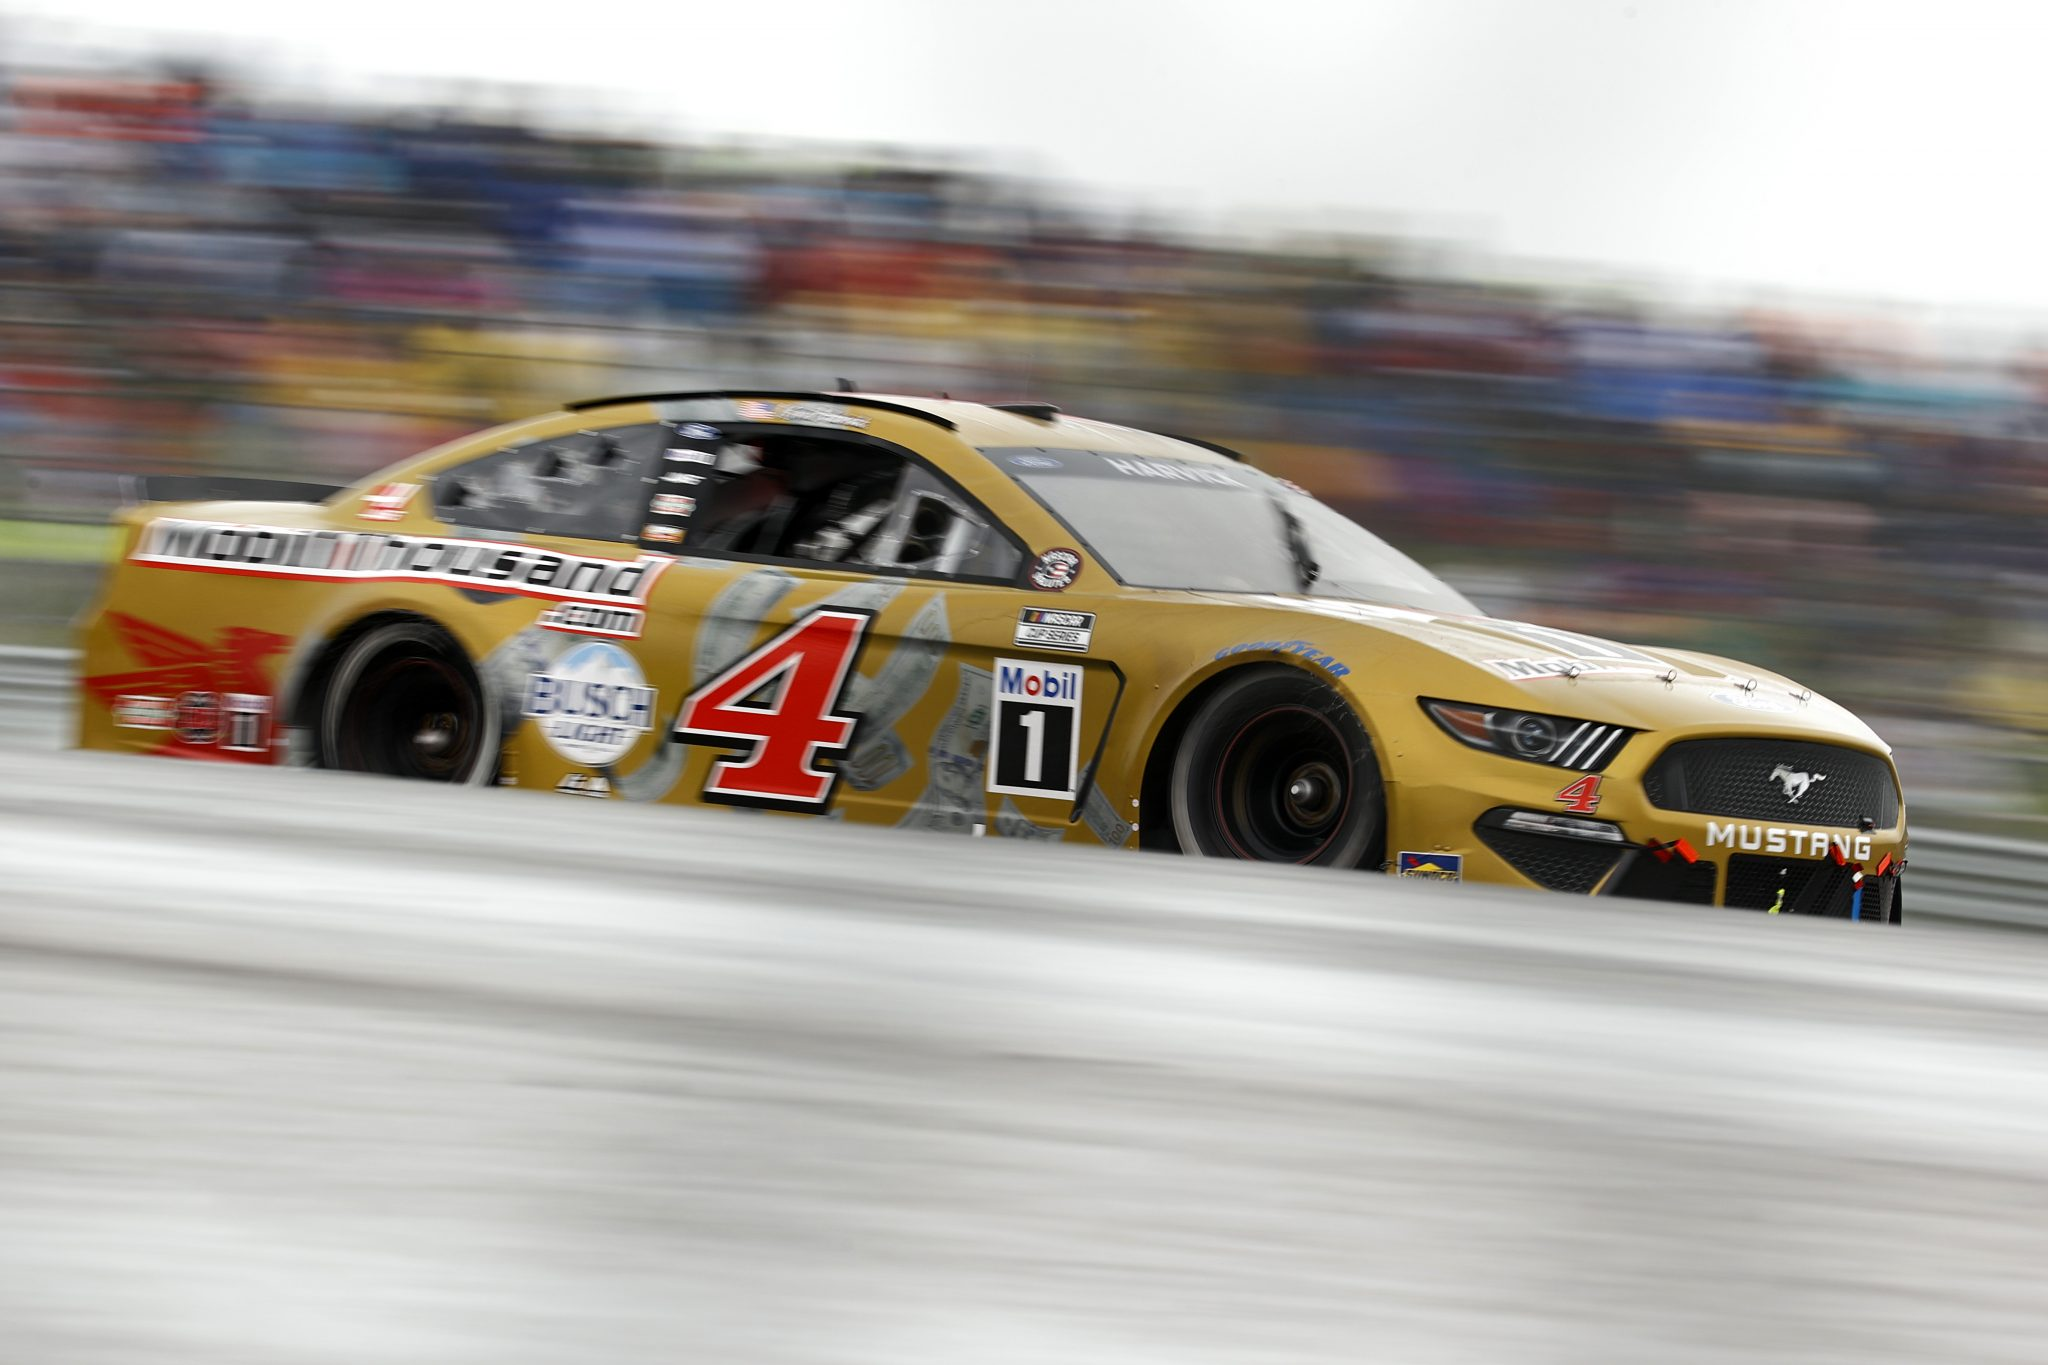 AUSTIN, TEXAS - MAY 23: Kevin Harvick, driver of the #4 Mobil1Thousand.com Ford, drives during the NASCAR Cup Series EchoPark Texas Grand Prix at Circuit of The Americas on May 23, 2021 in Austin, Texas. (Photo by Jared C. Tilton/Getty Images)   Getty Images